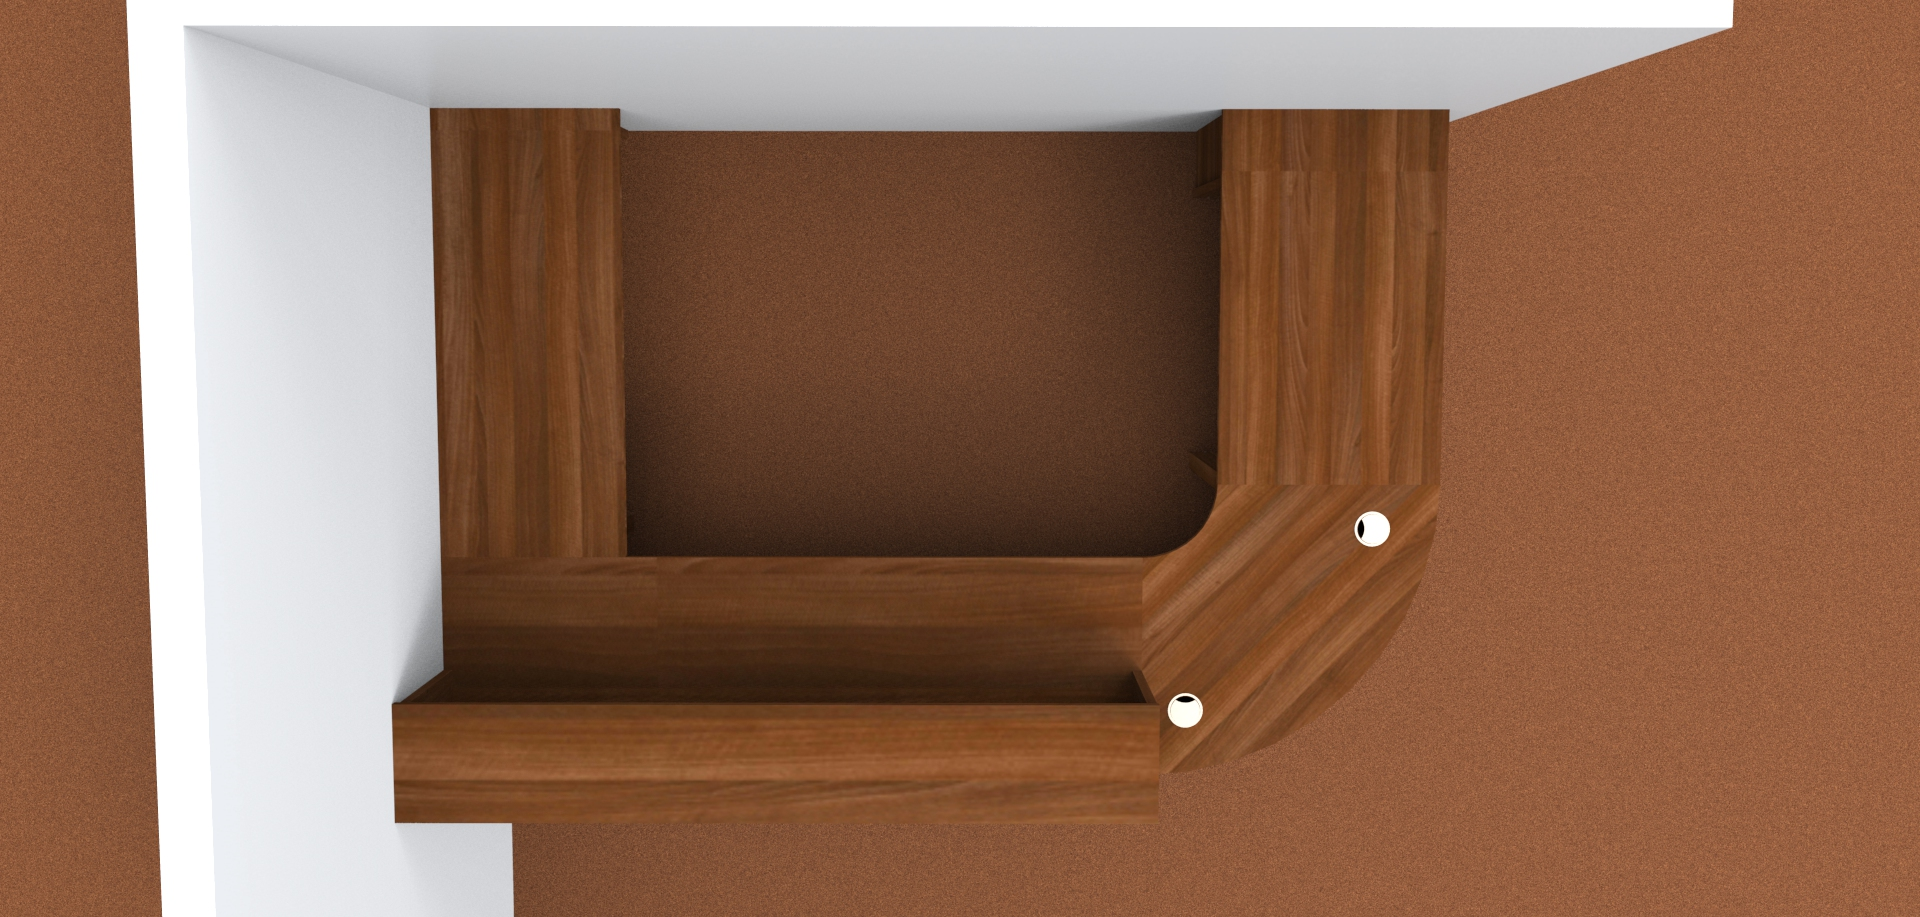 Render- Flex modular reception desk with a gate and flap, Shown from above.